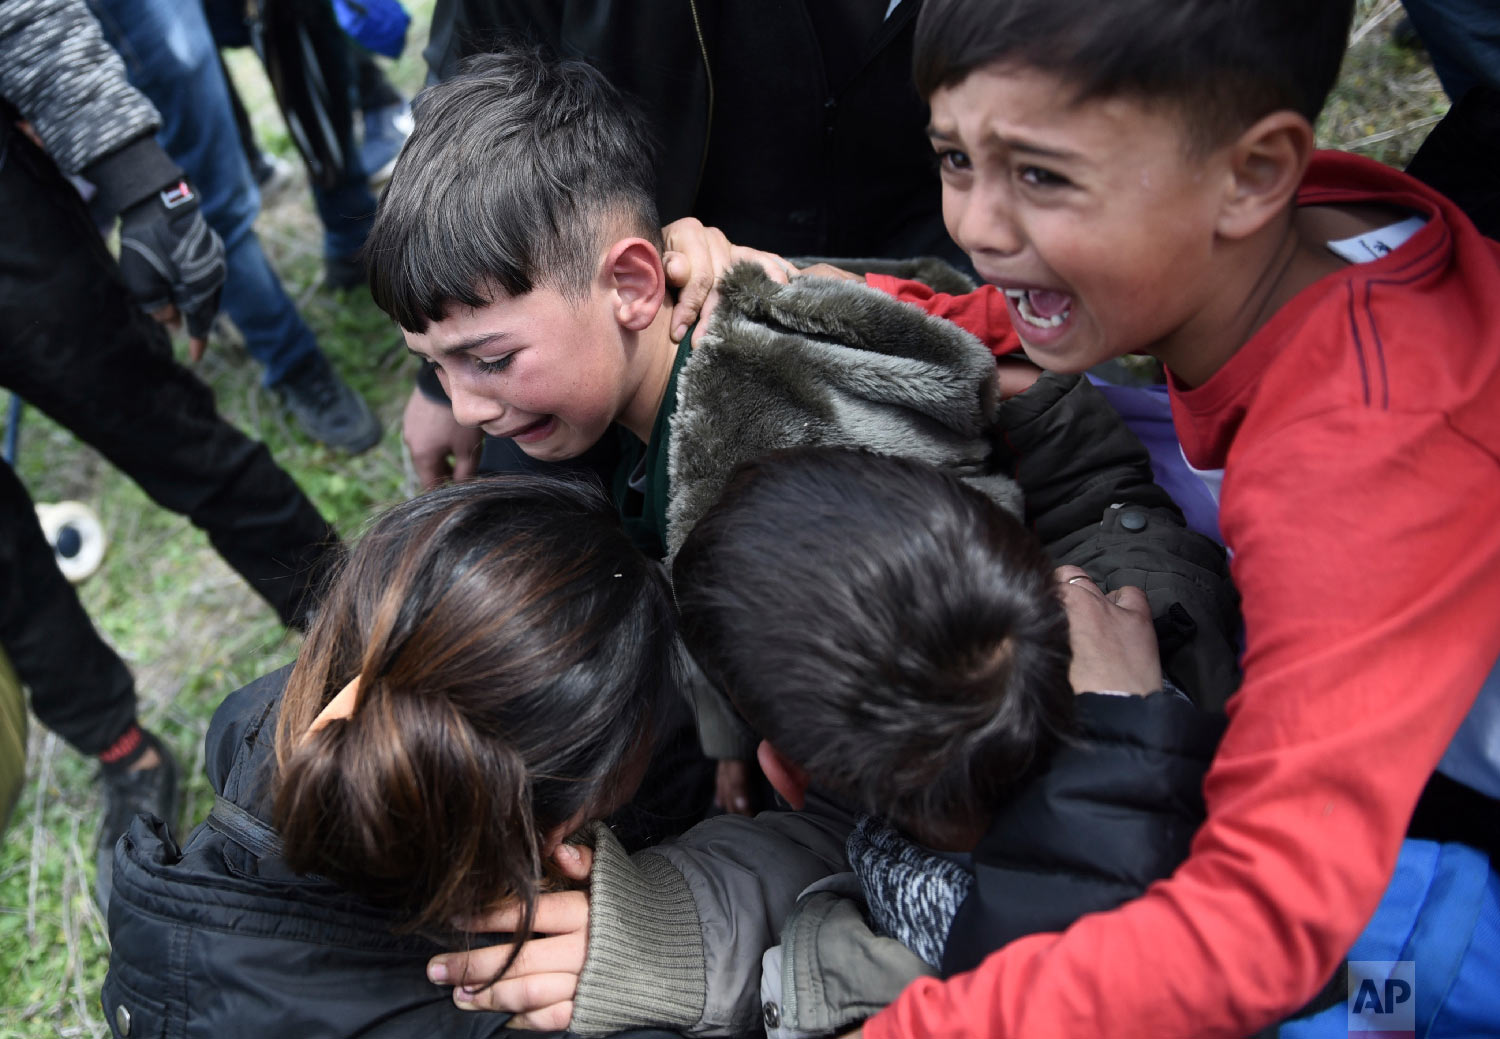 Children cry after police used tear gas during clashes outside a refugee camp in the village of Diavata, west of Thessaloniki, northern Greece, Friday, April 5, 2019. (AP Photo/Giannis Papanikos)